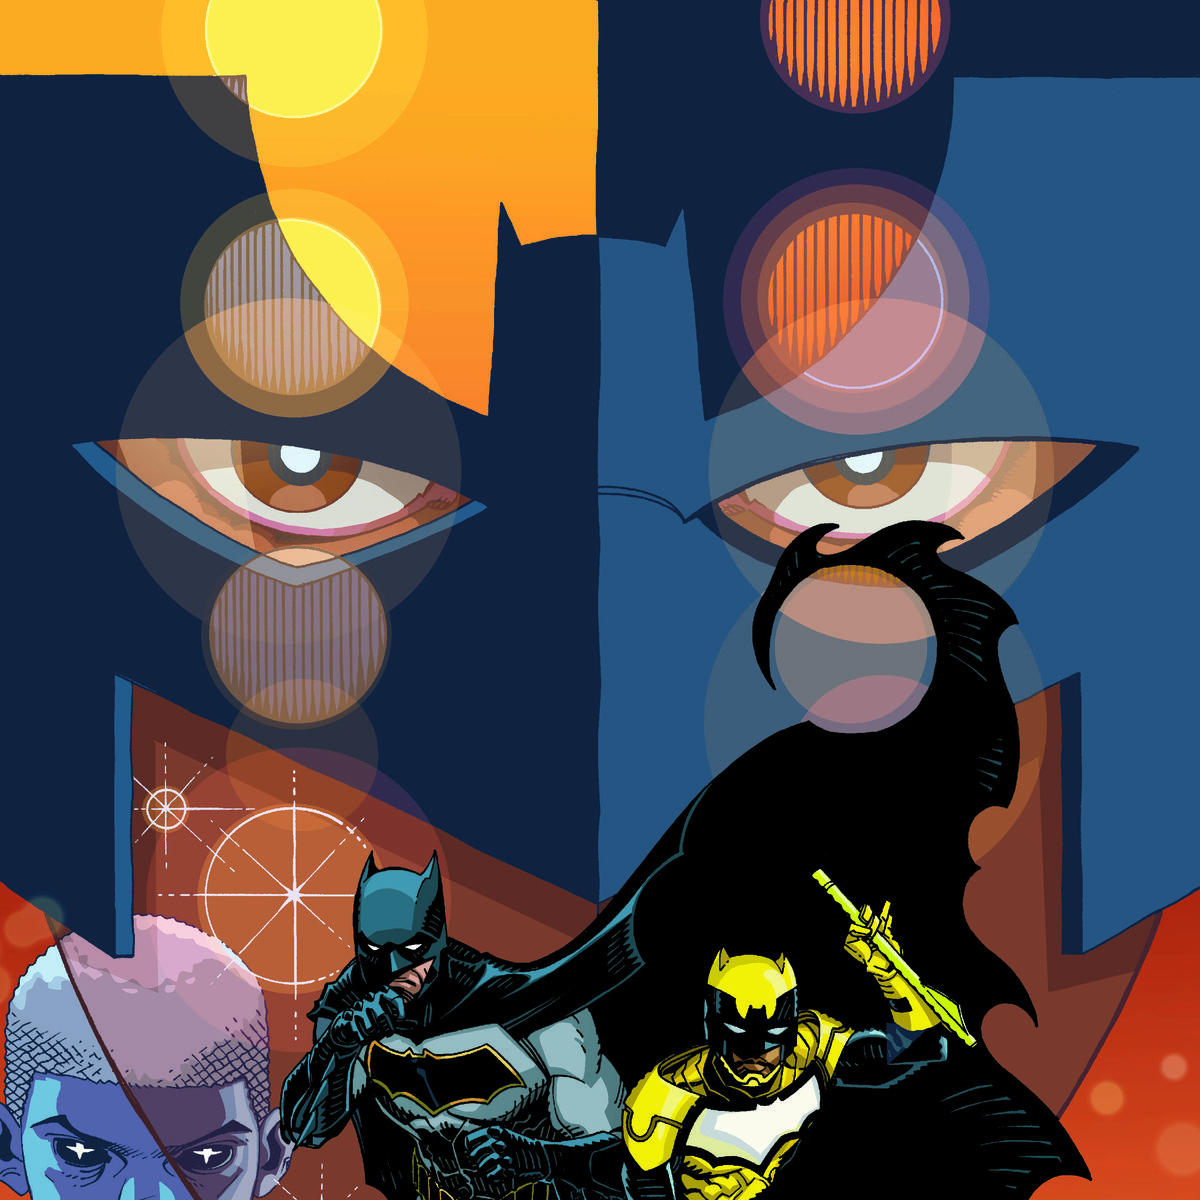 batman_signal02hero.jpg